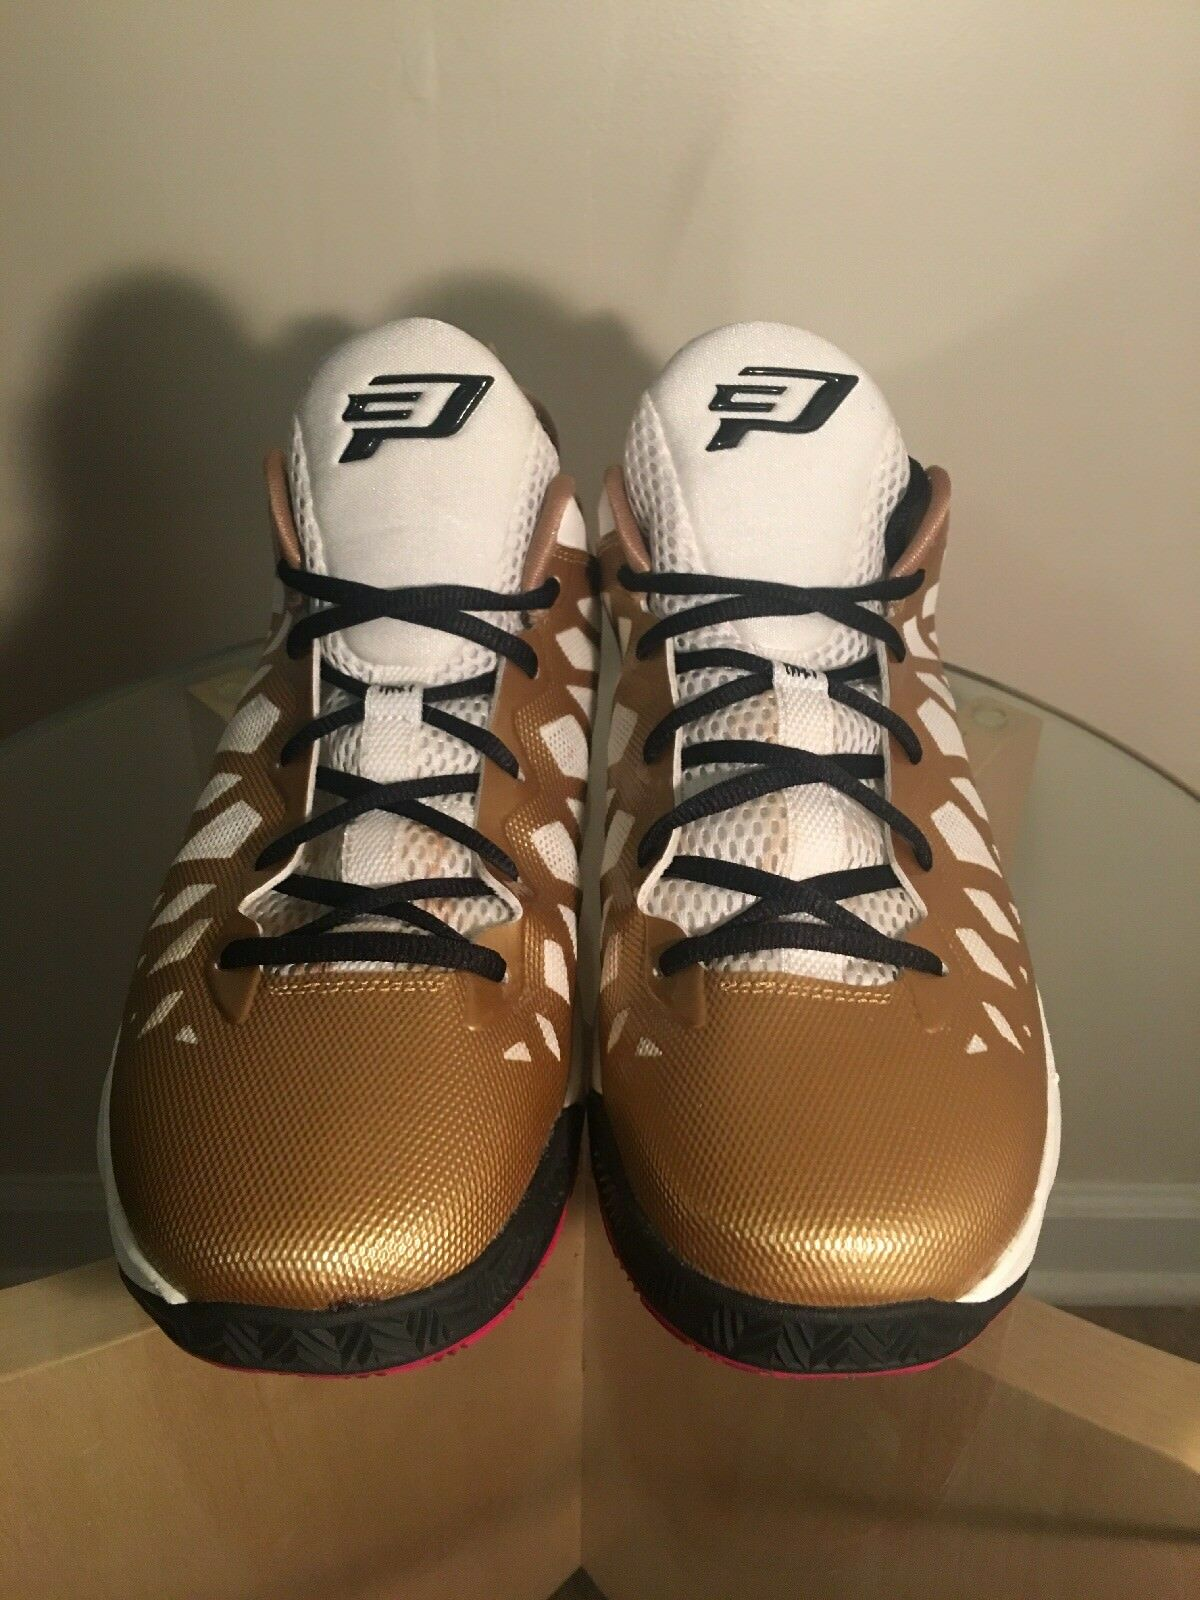 [535807-705] Mens Air Jordan CP3.VI Metallic gold Black